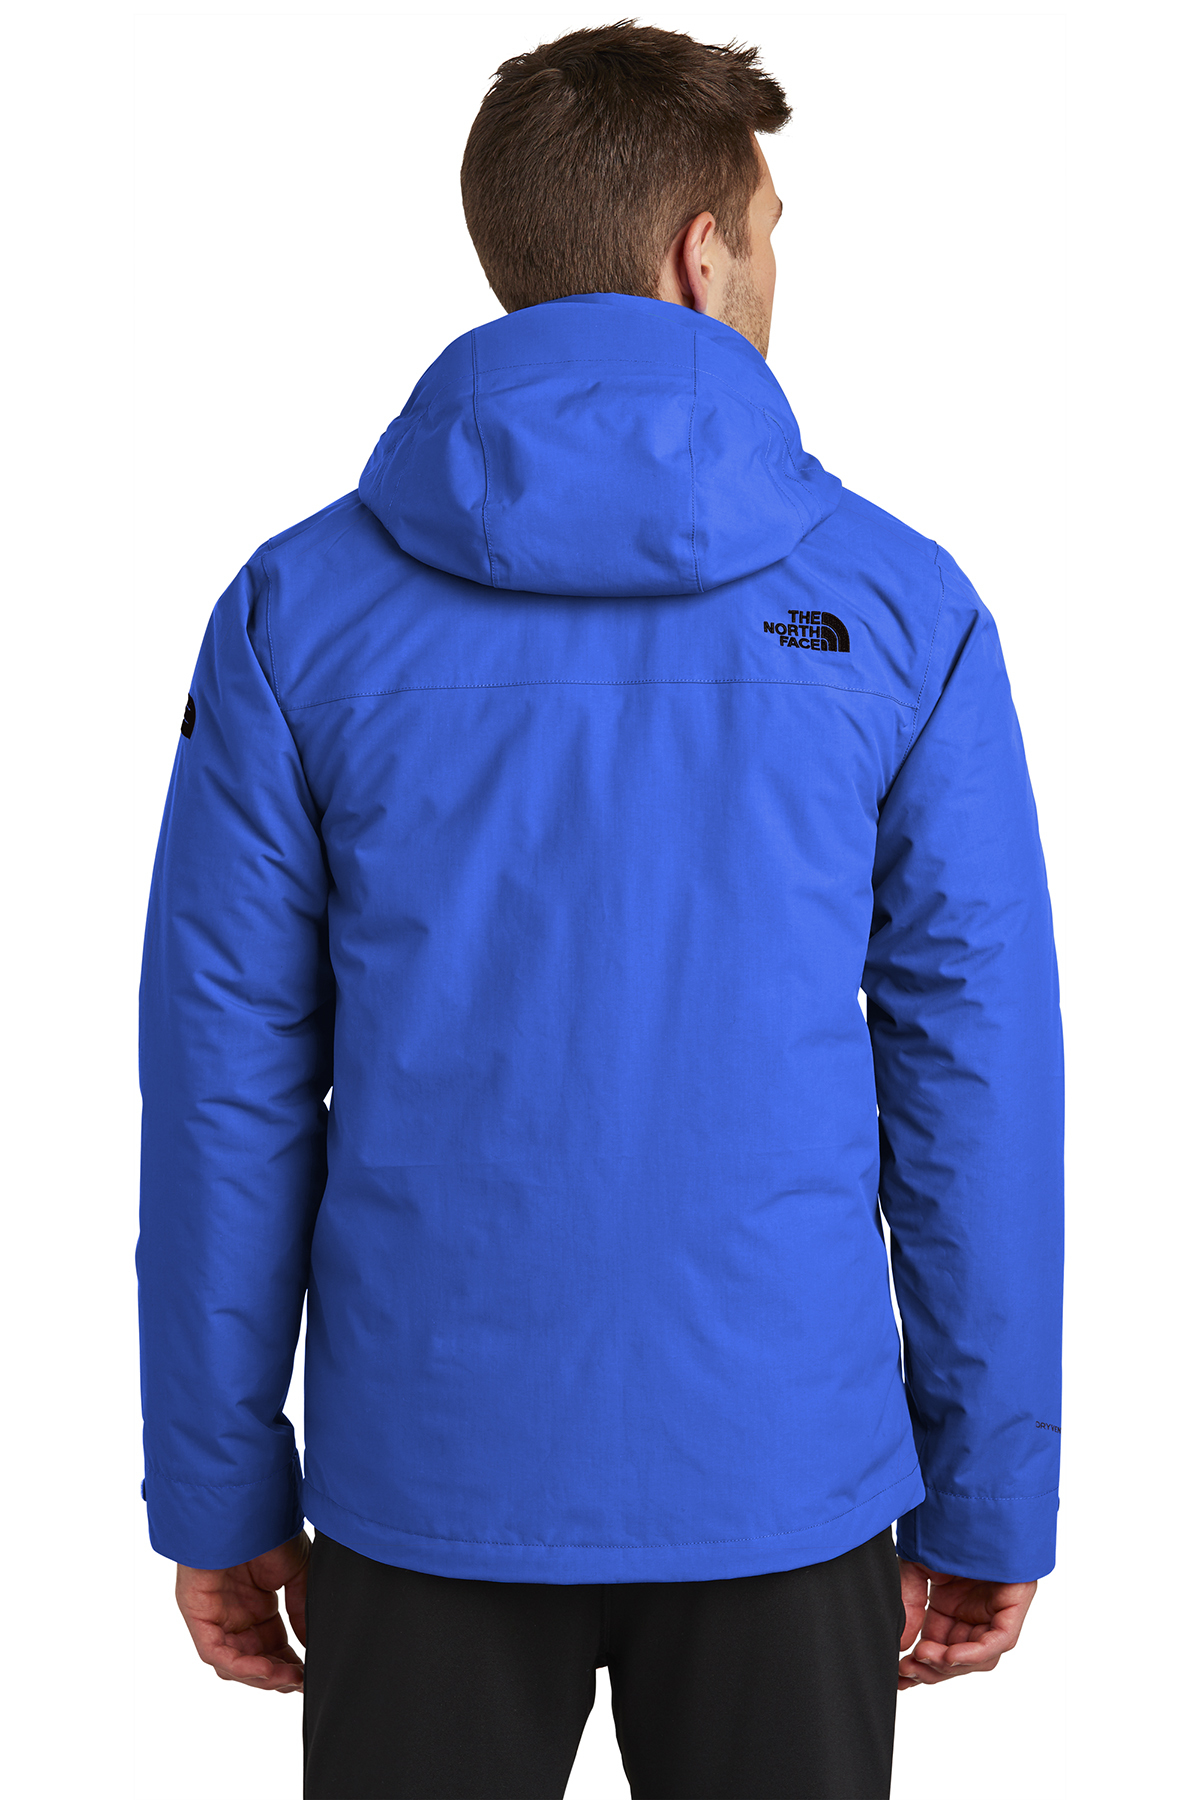 The North Face ® Traverse Triclimate ® 3 in 1 Jacket